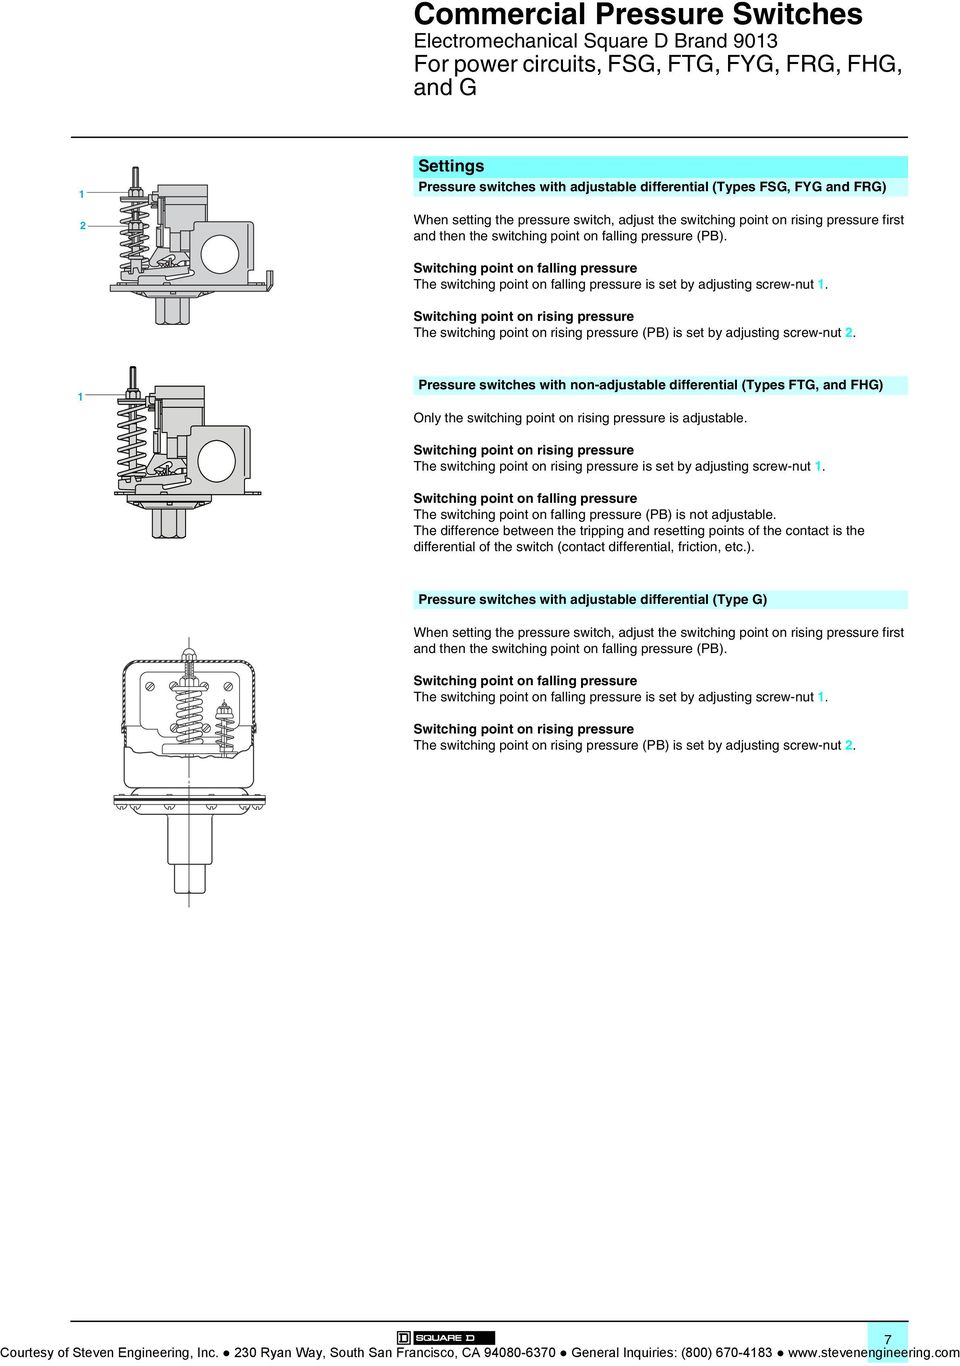 Pumptrol 9013 Wiring Diagram Commercial Pressure Switches Type F And Switching Point On Falling The Is Set By Adjusting Screw